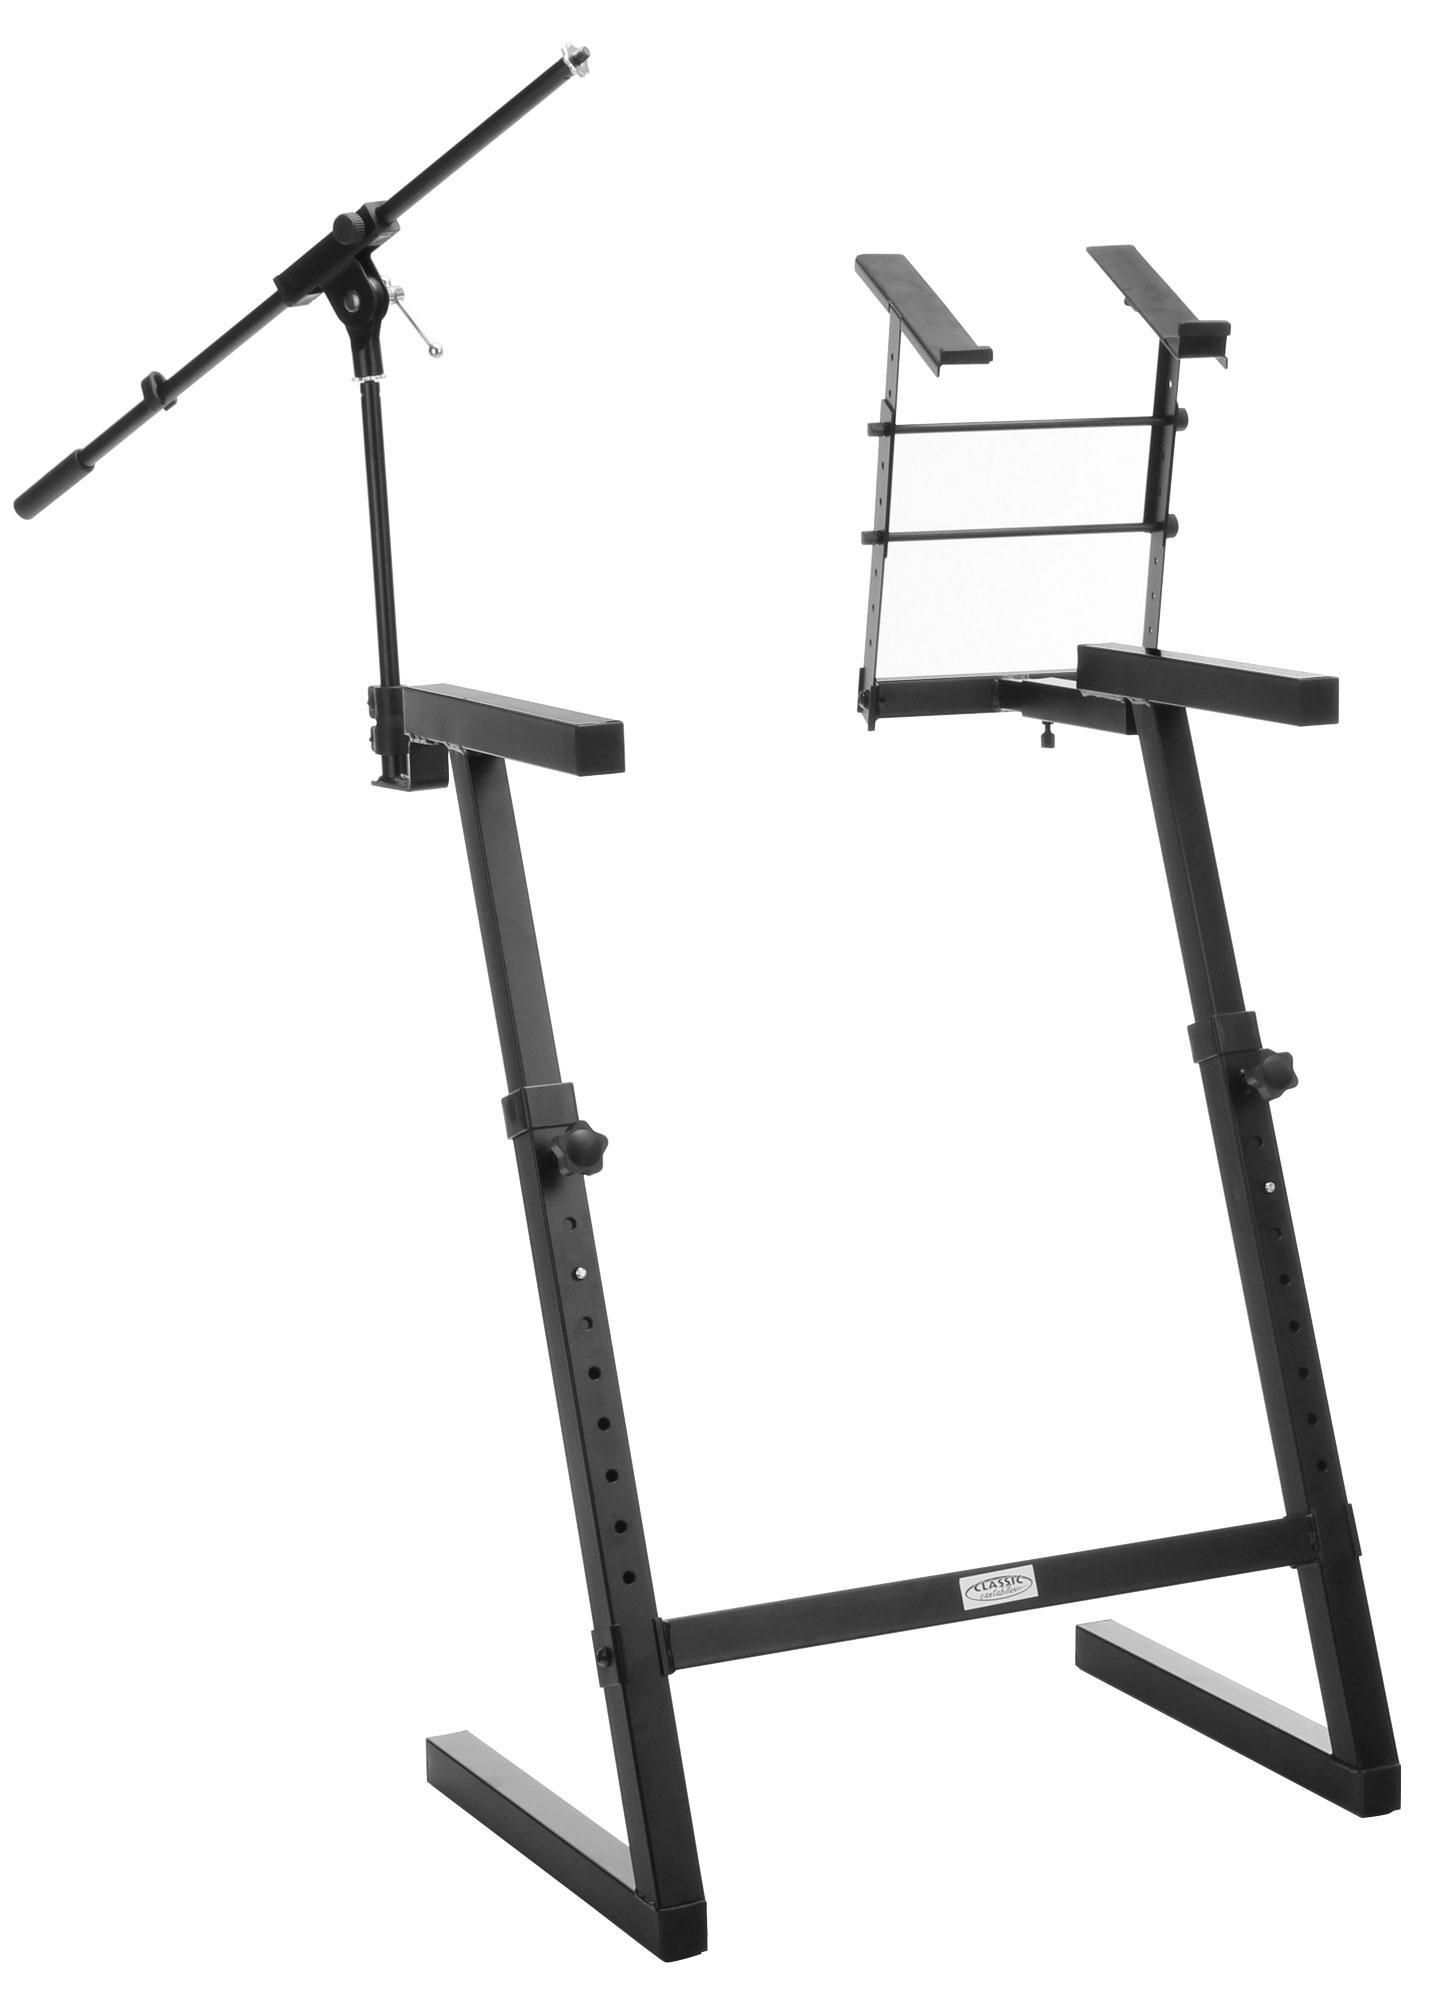 classic cantabile kws 100 keyboard stand with microphone stand and laptop holder. Black Bedroom Furniture Sets. Home Design Ideas